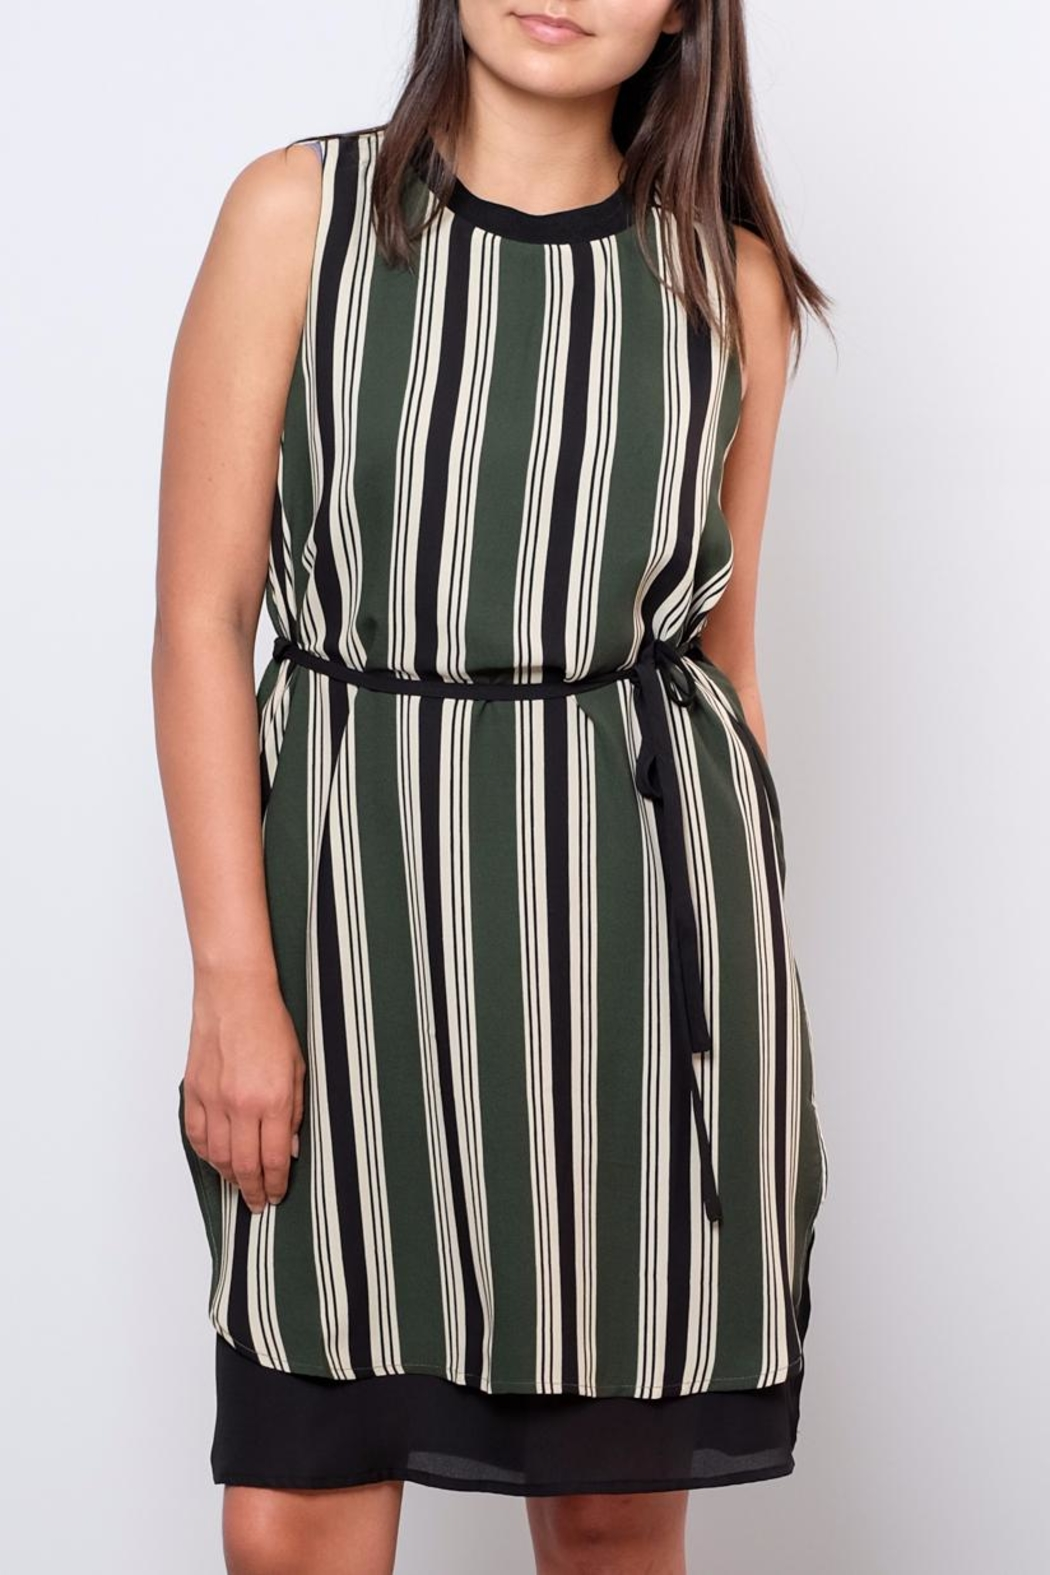 Everly Striped Shift Dress - Front Full Image